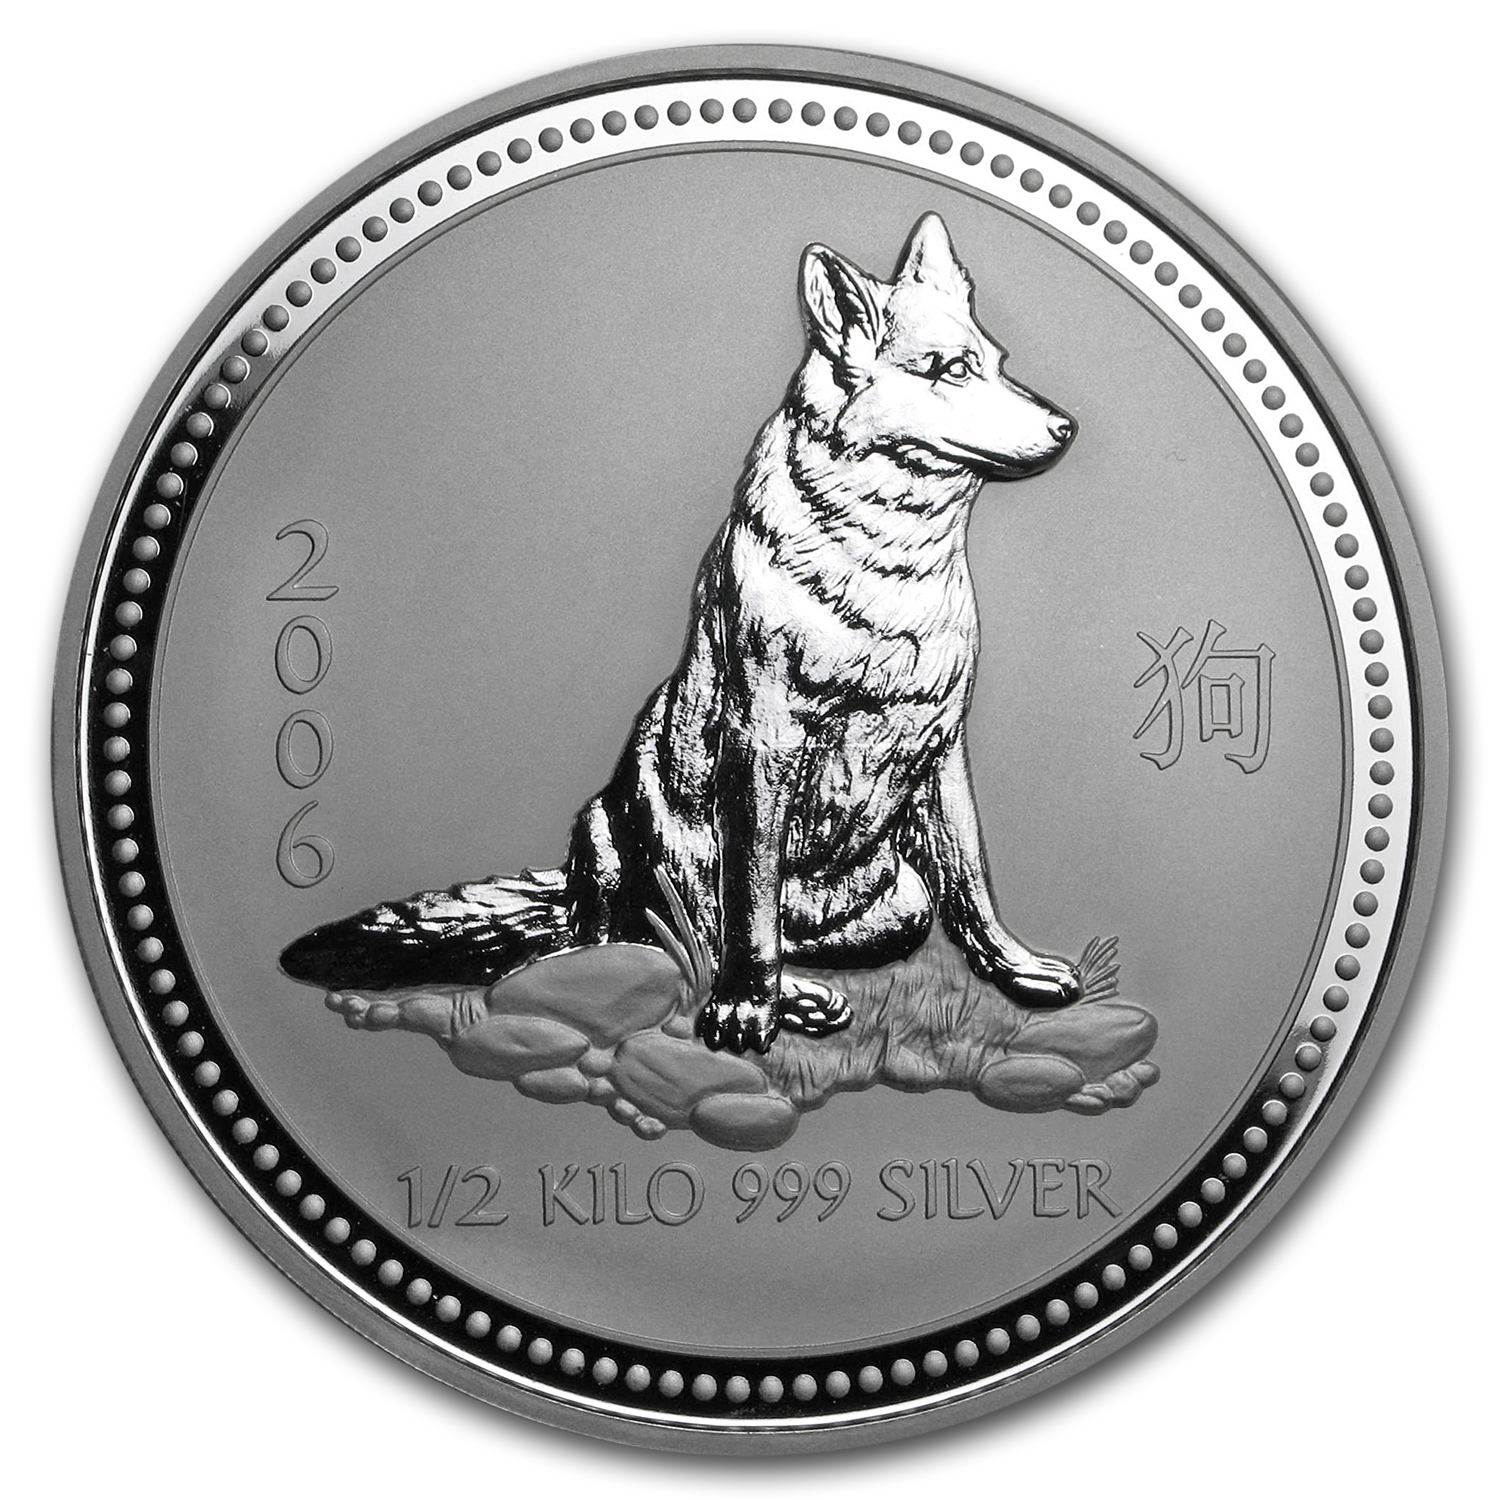 2006 1/2 kilo Silver Lunar Year of the Dog (Series I) - Key Date!